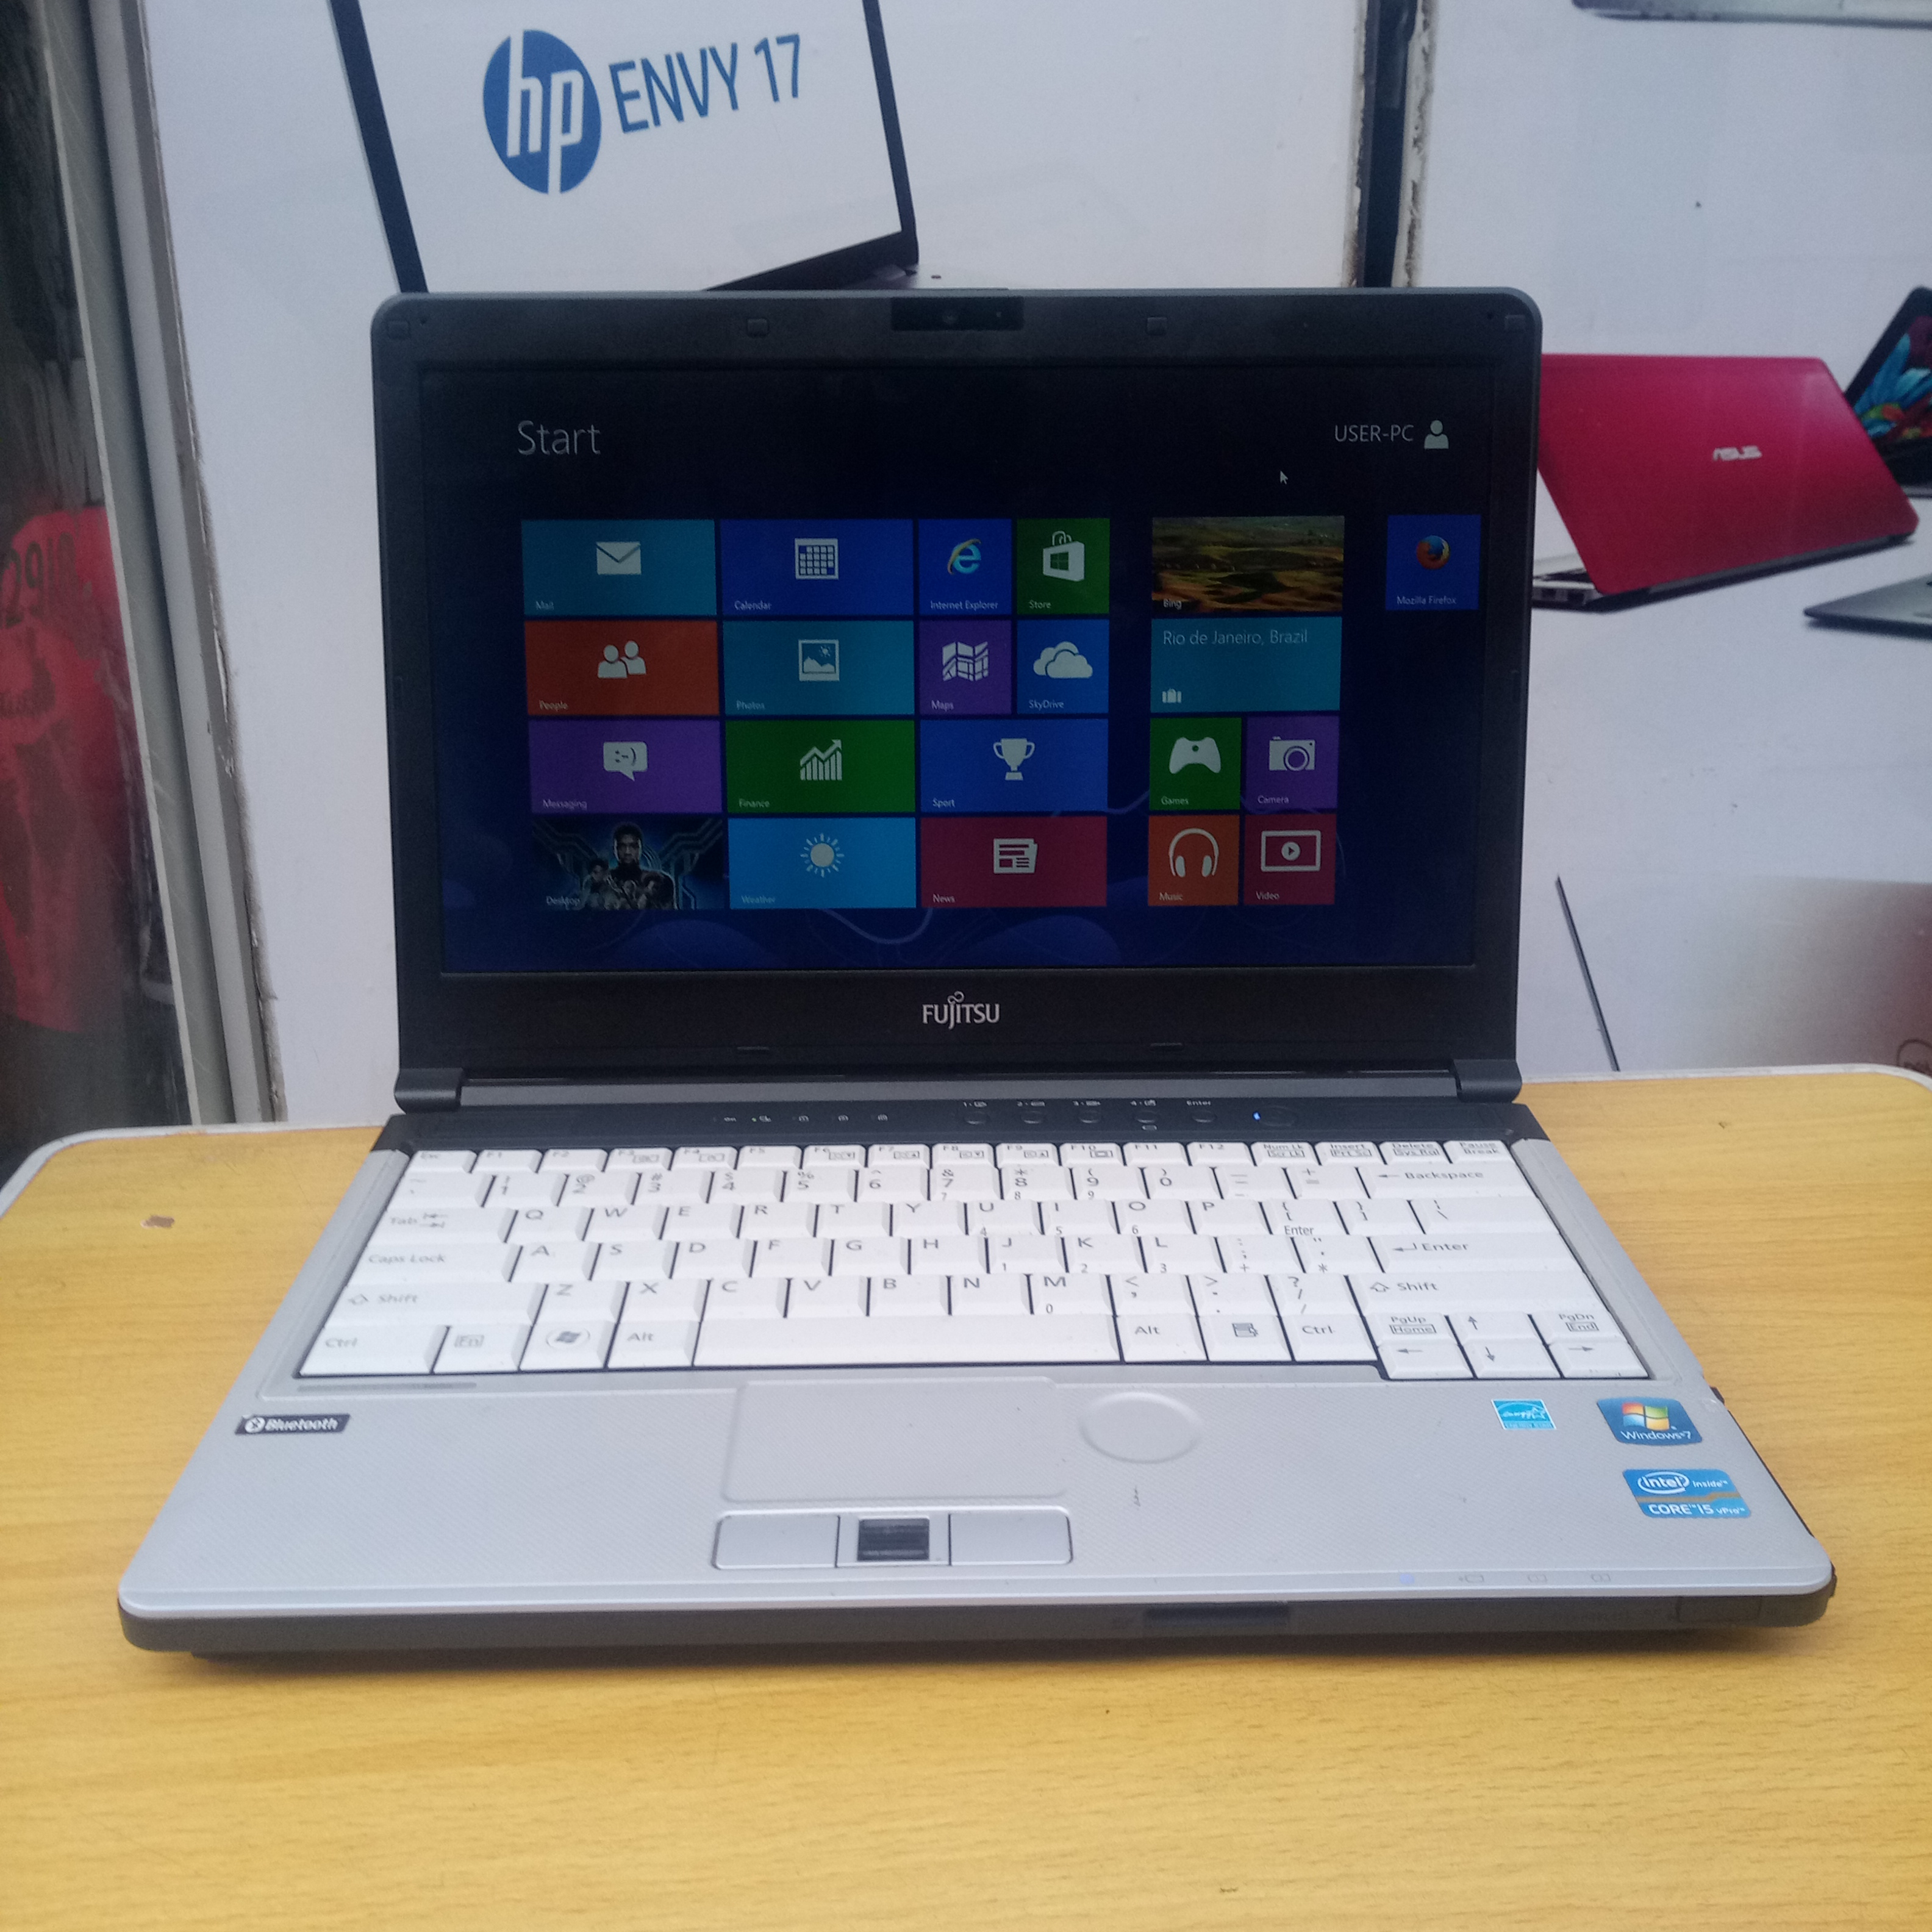 Fujitsu core i5, 320gb HDD – 4gb Ram with Webcam